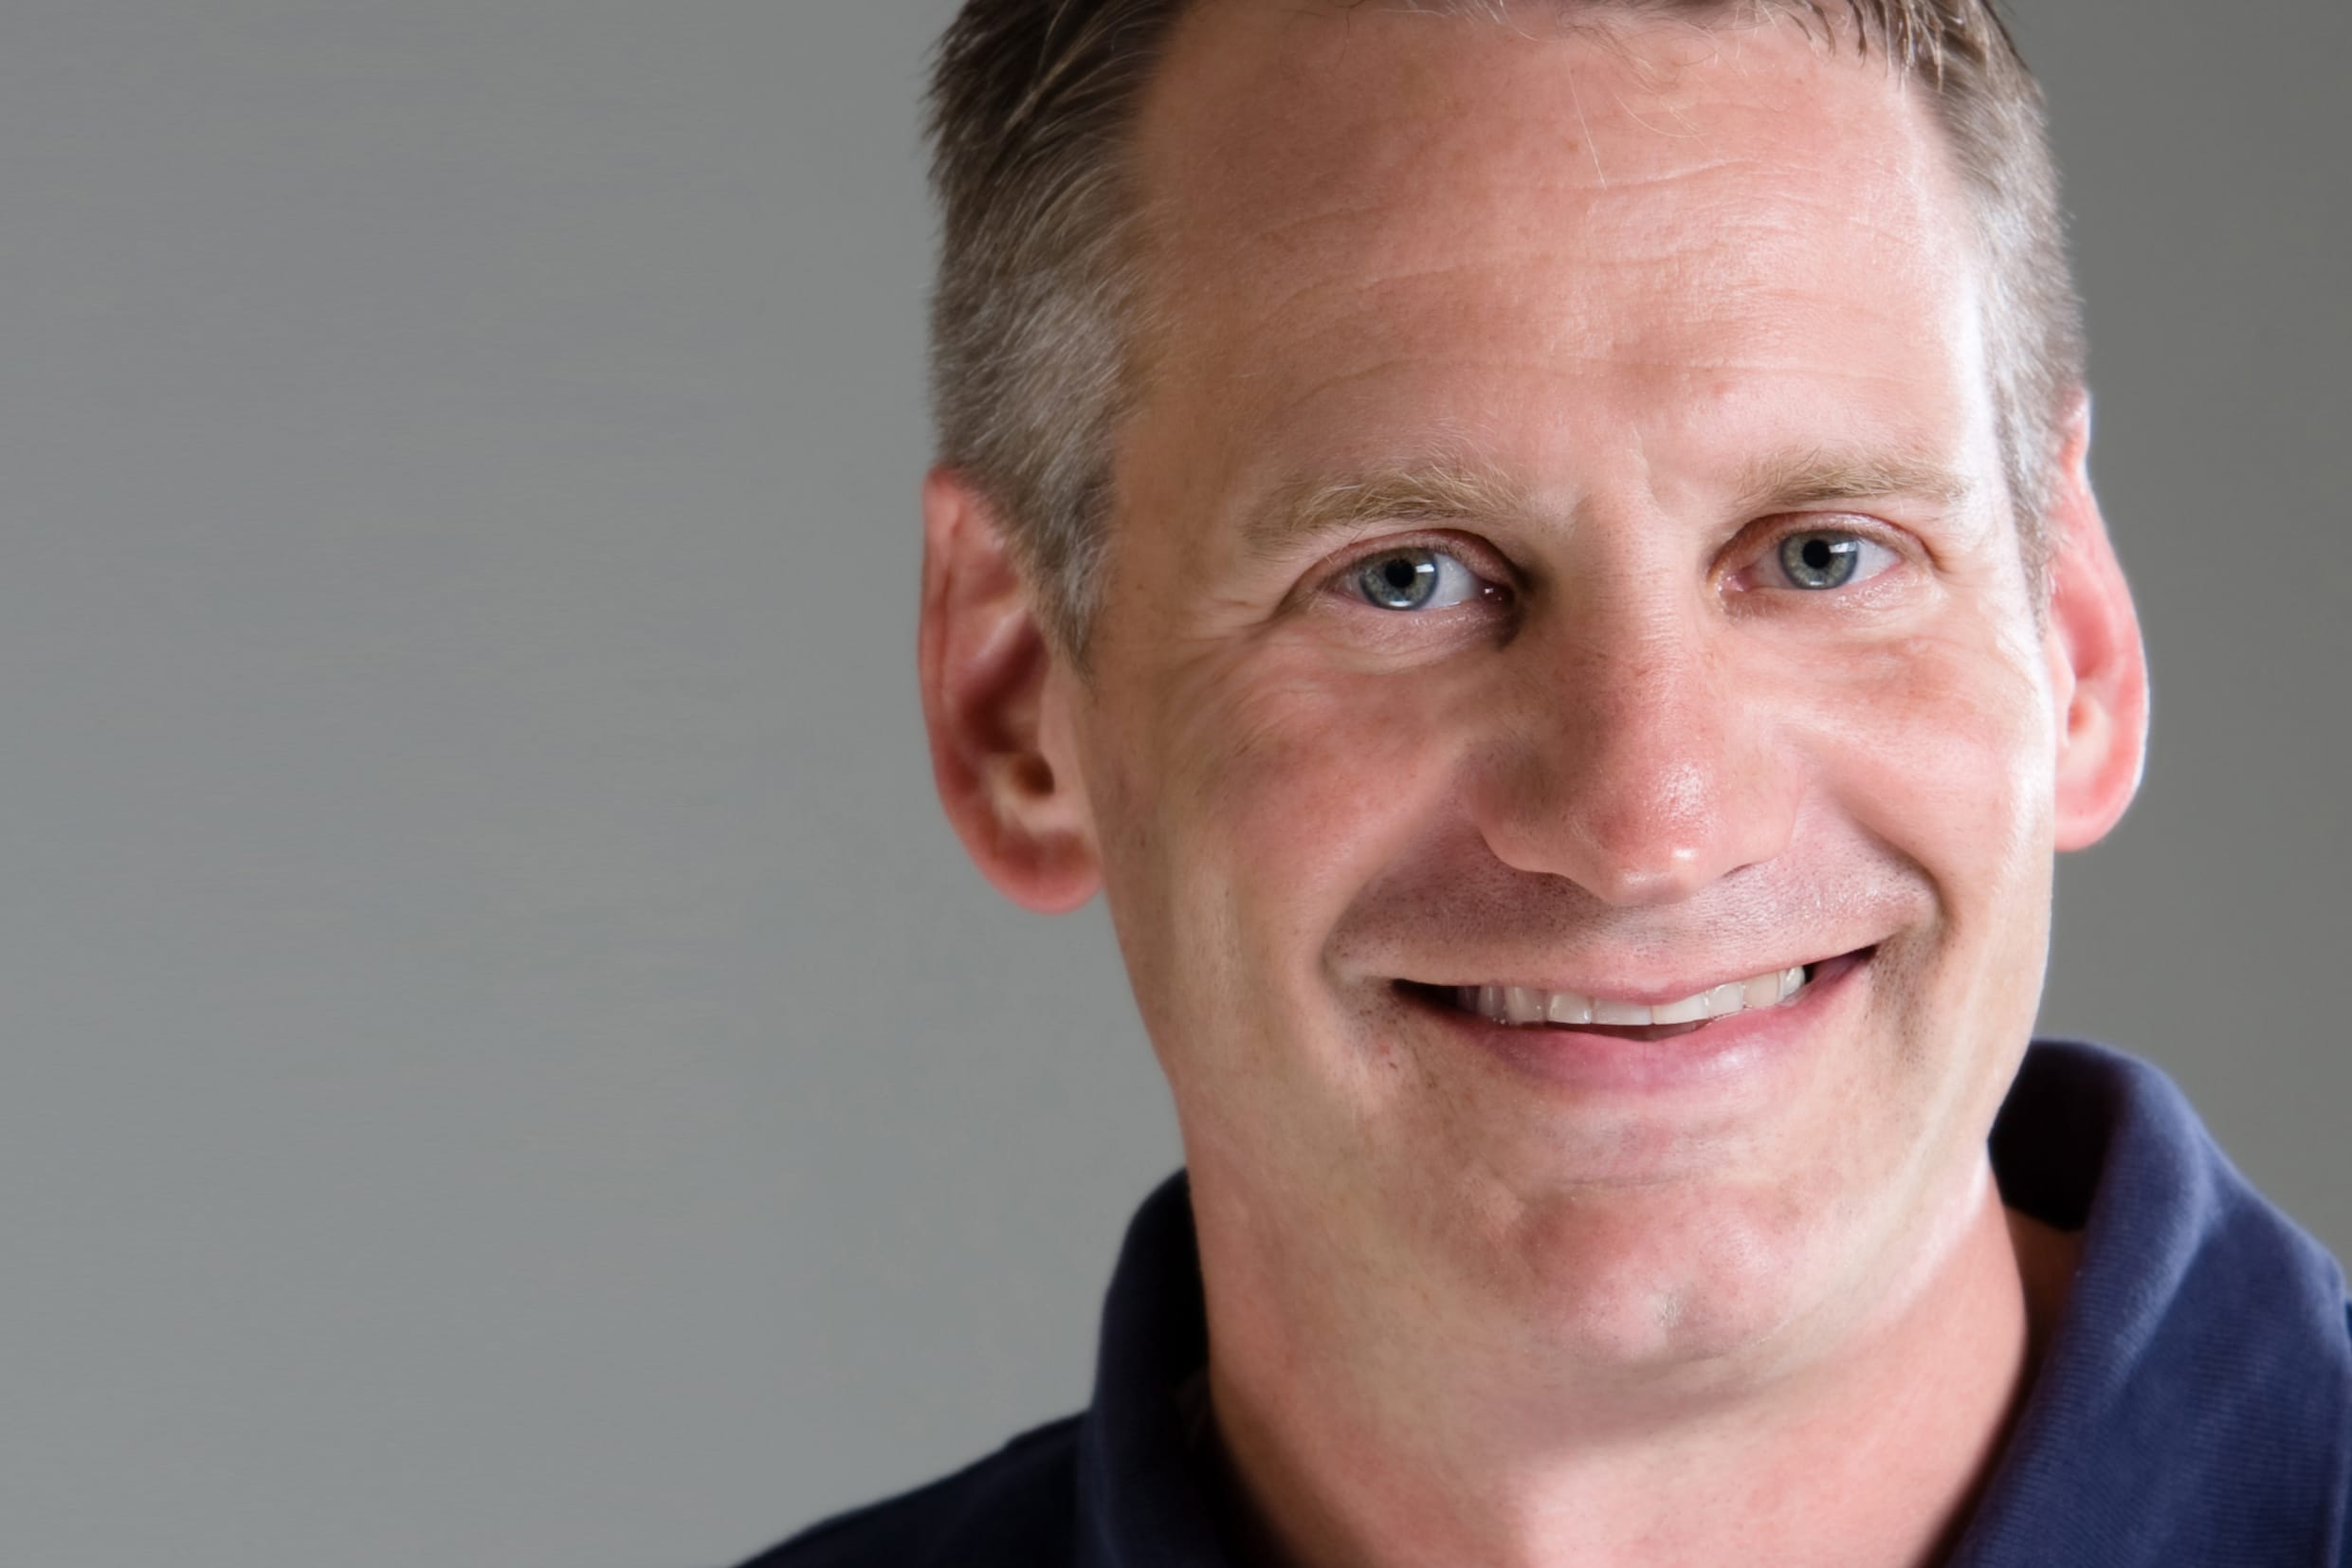 CNLP 159: Ron Edmondson On Busting the 7 Myths that Break too Many Young Leaders